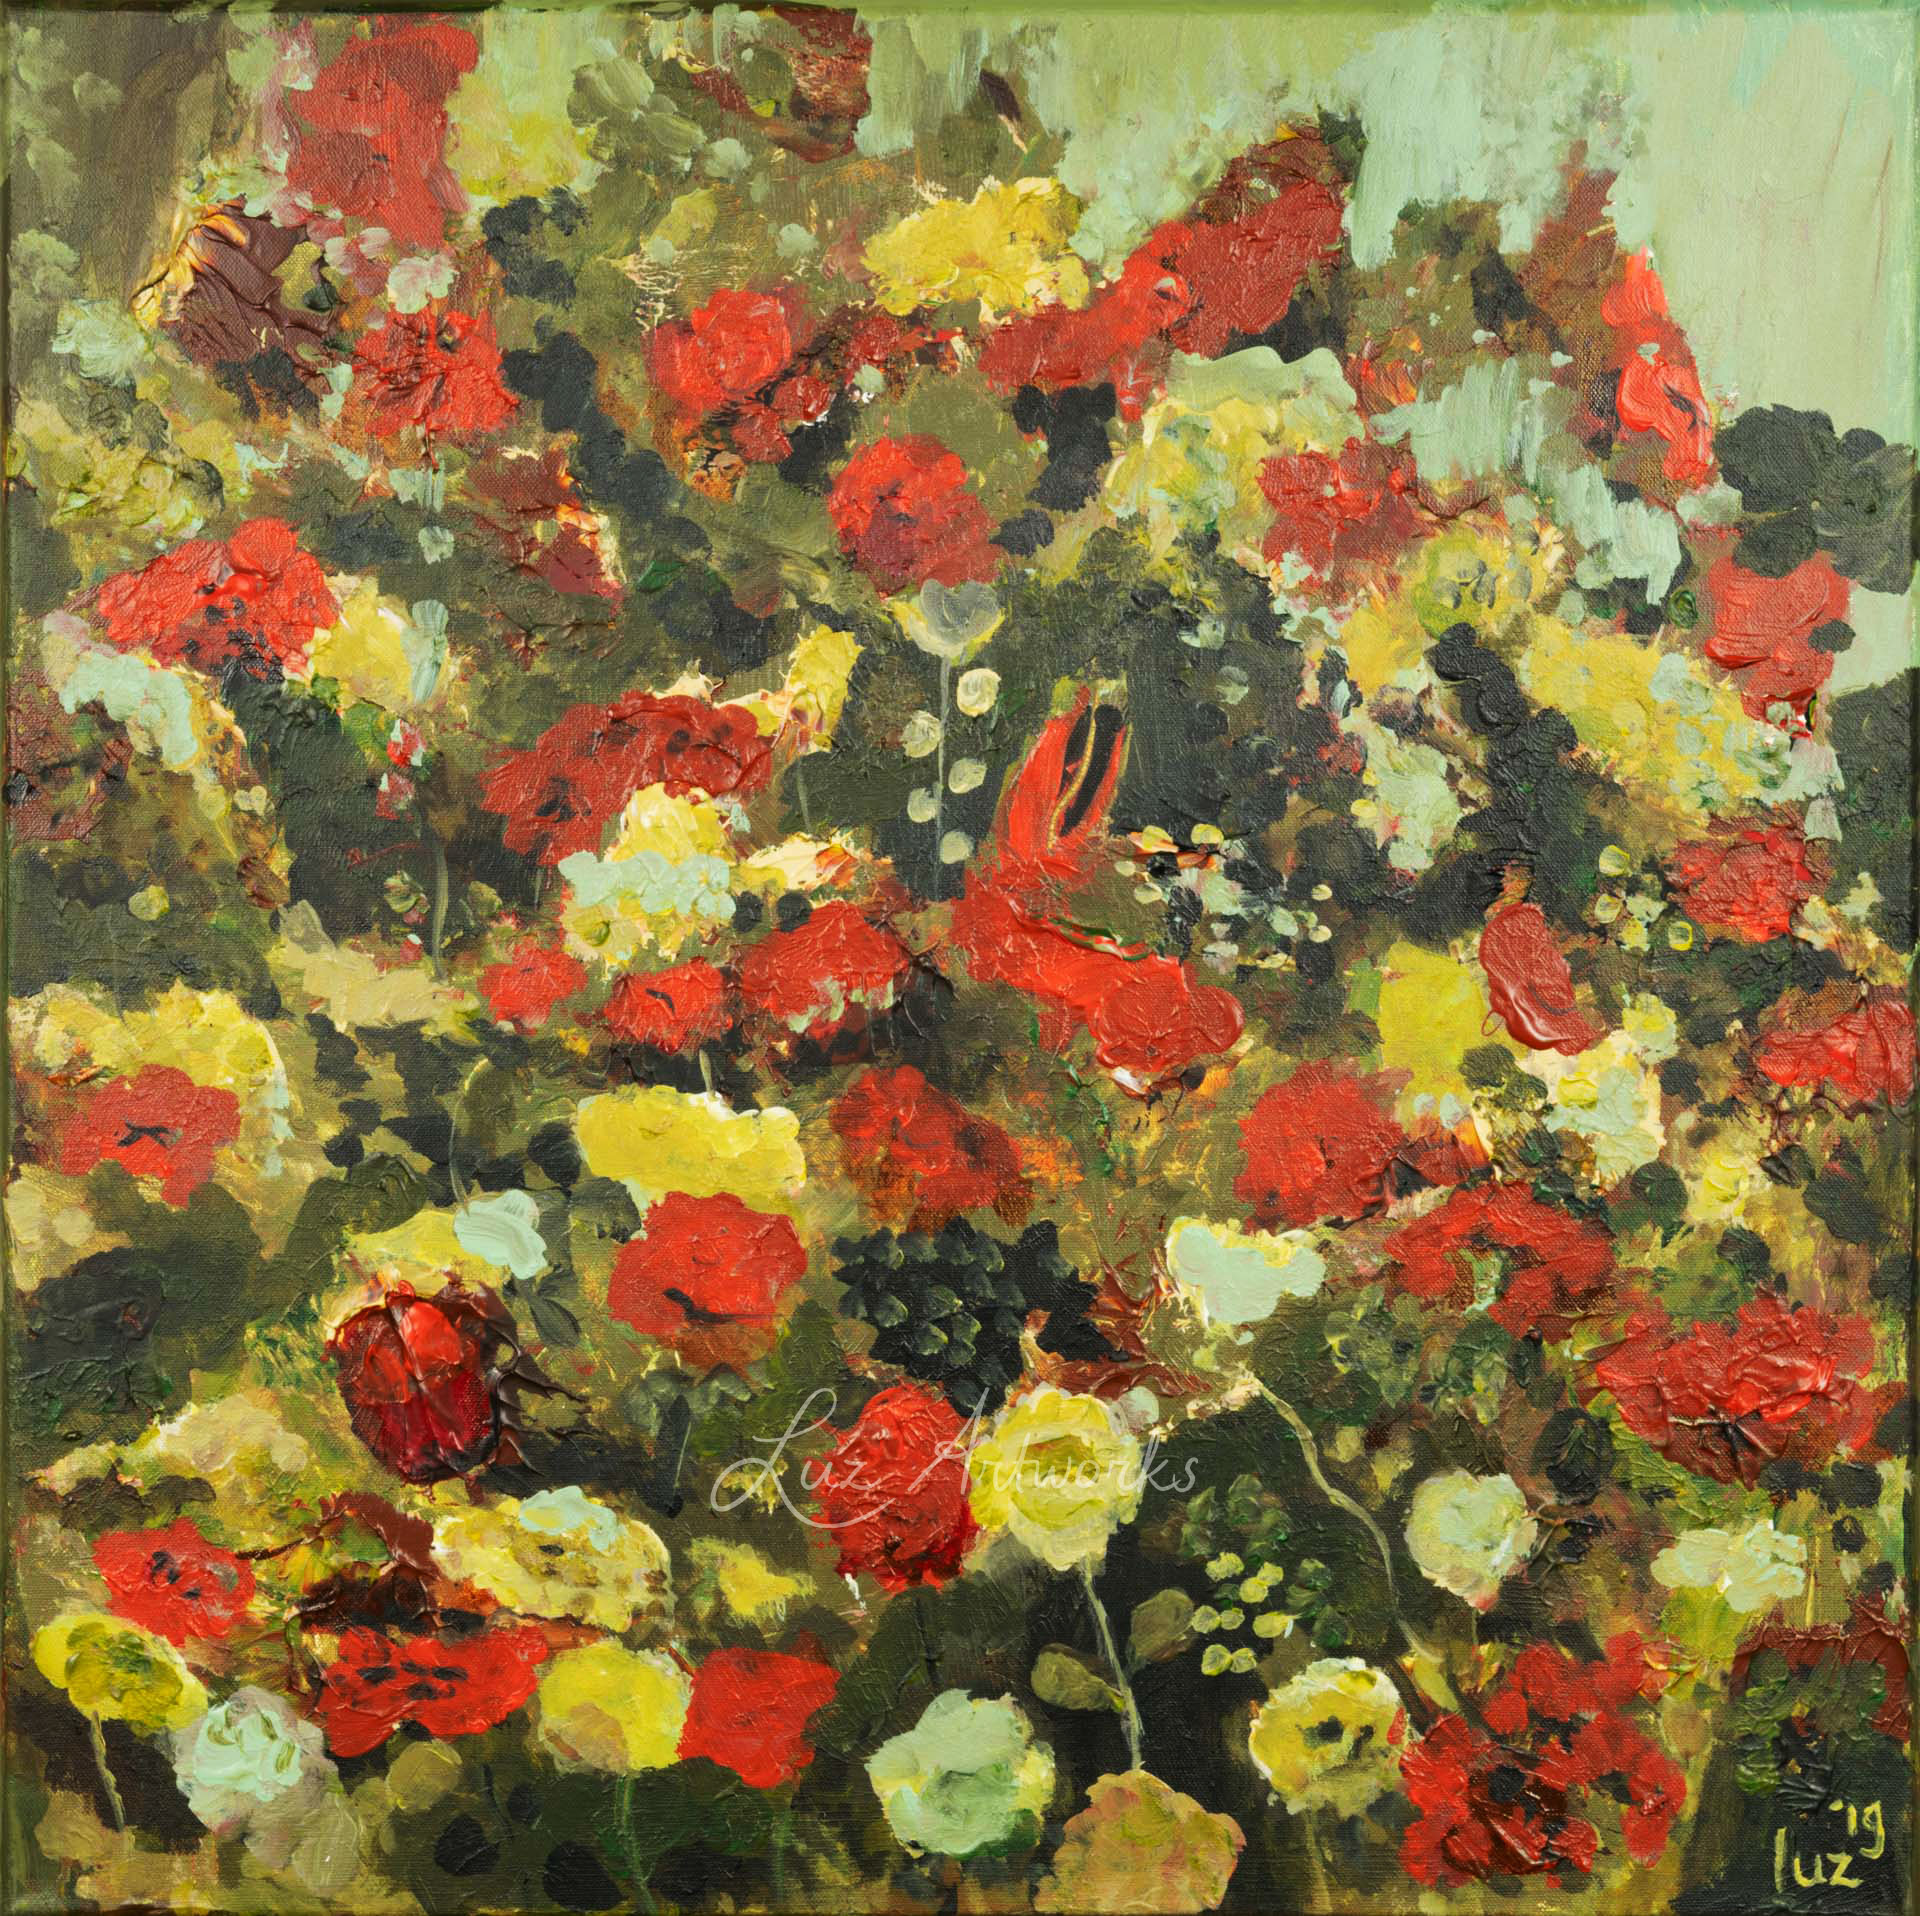 This image shows the painting 'Rose Garden' by Luz / Marloes Bloedjes.